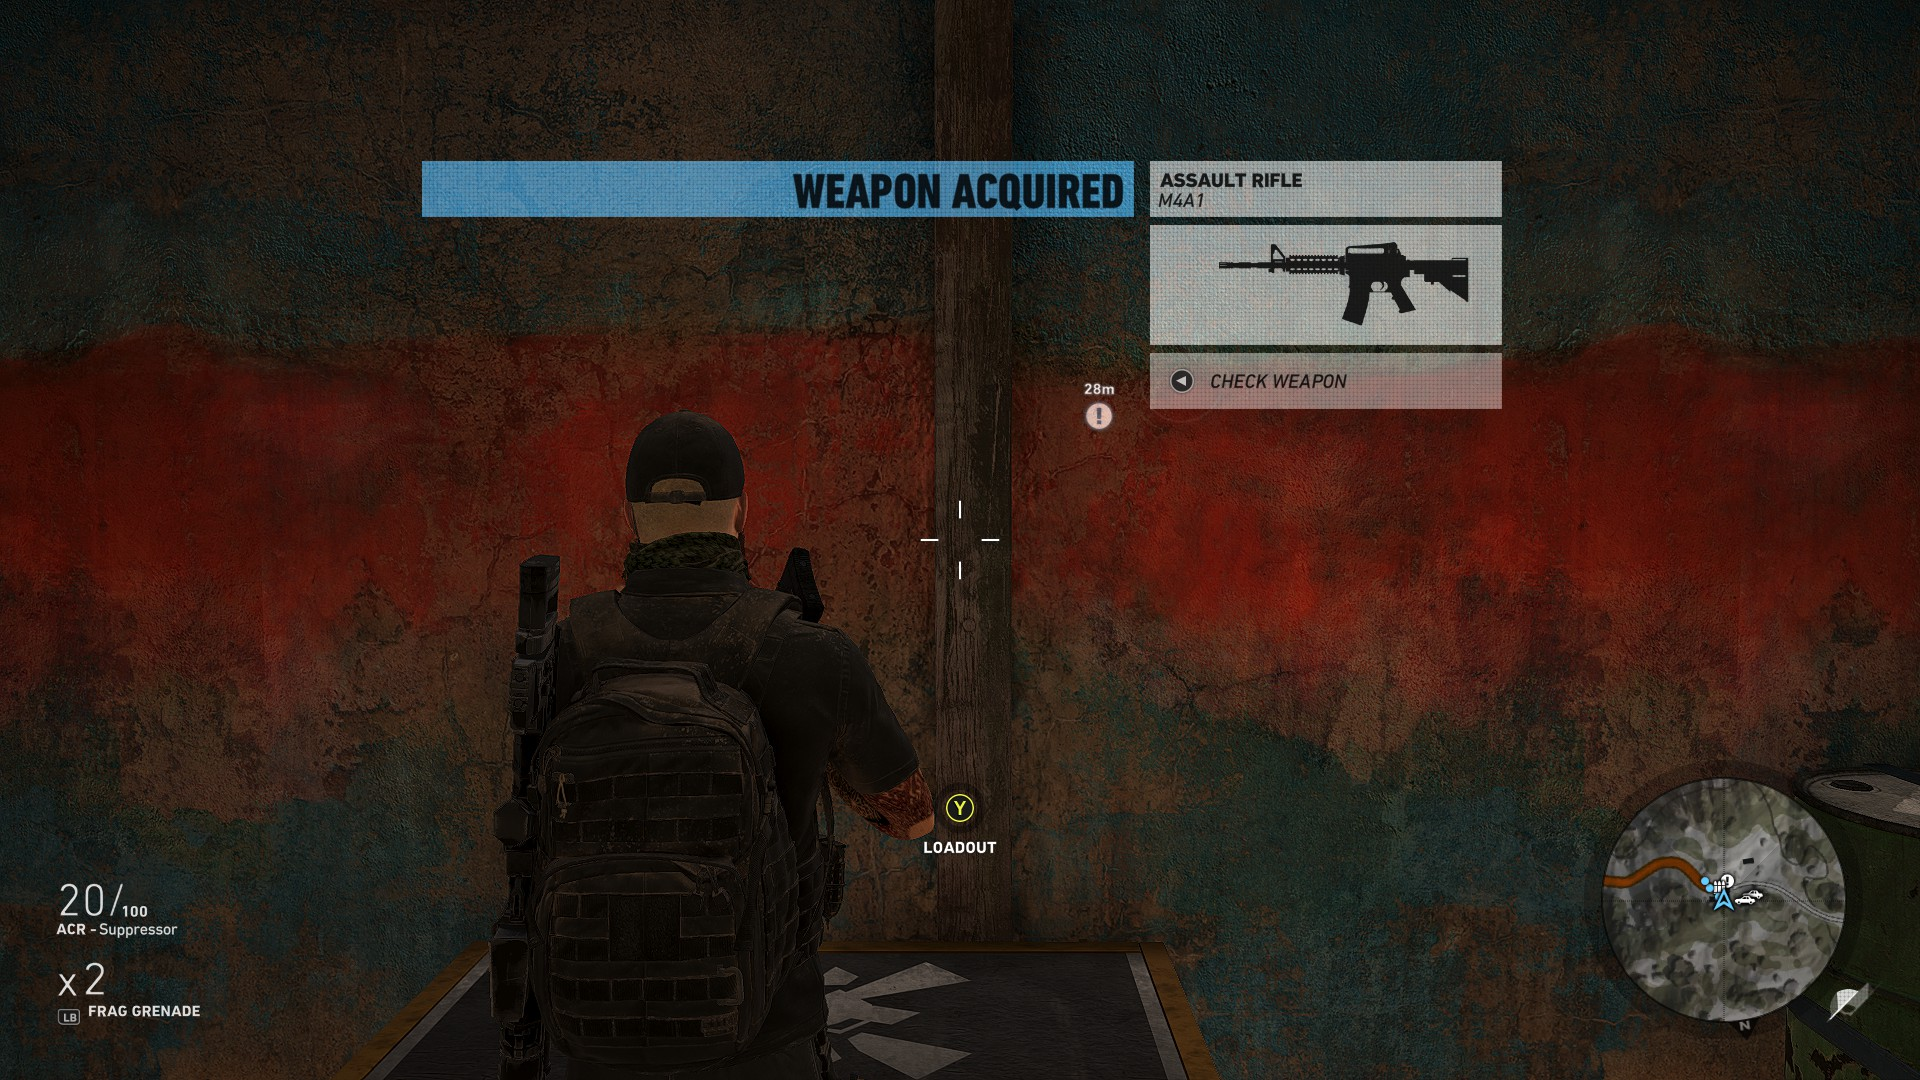 The M4A1 Assault Rifle. How to get the M4A1 in Ghost Recon Wildlands